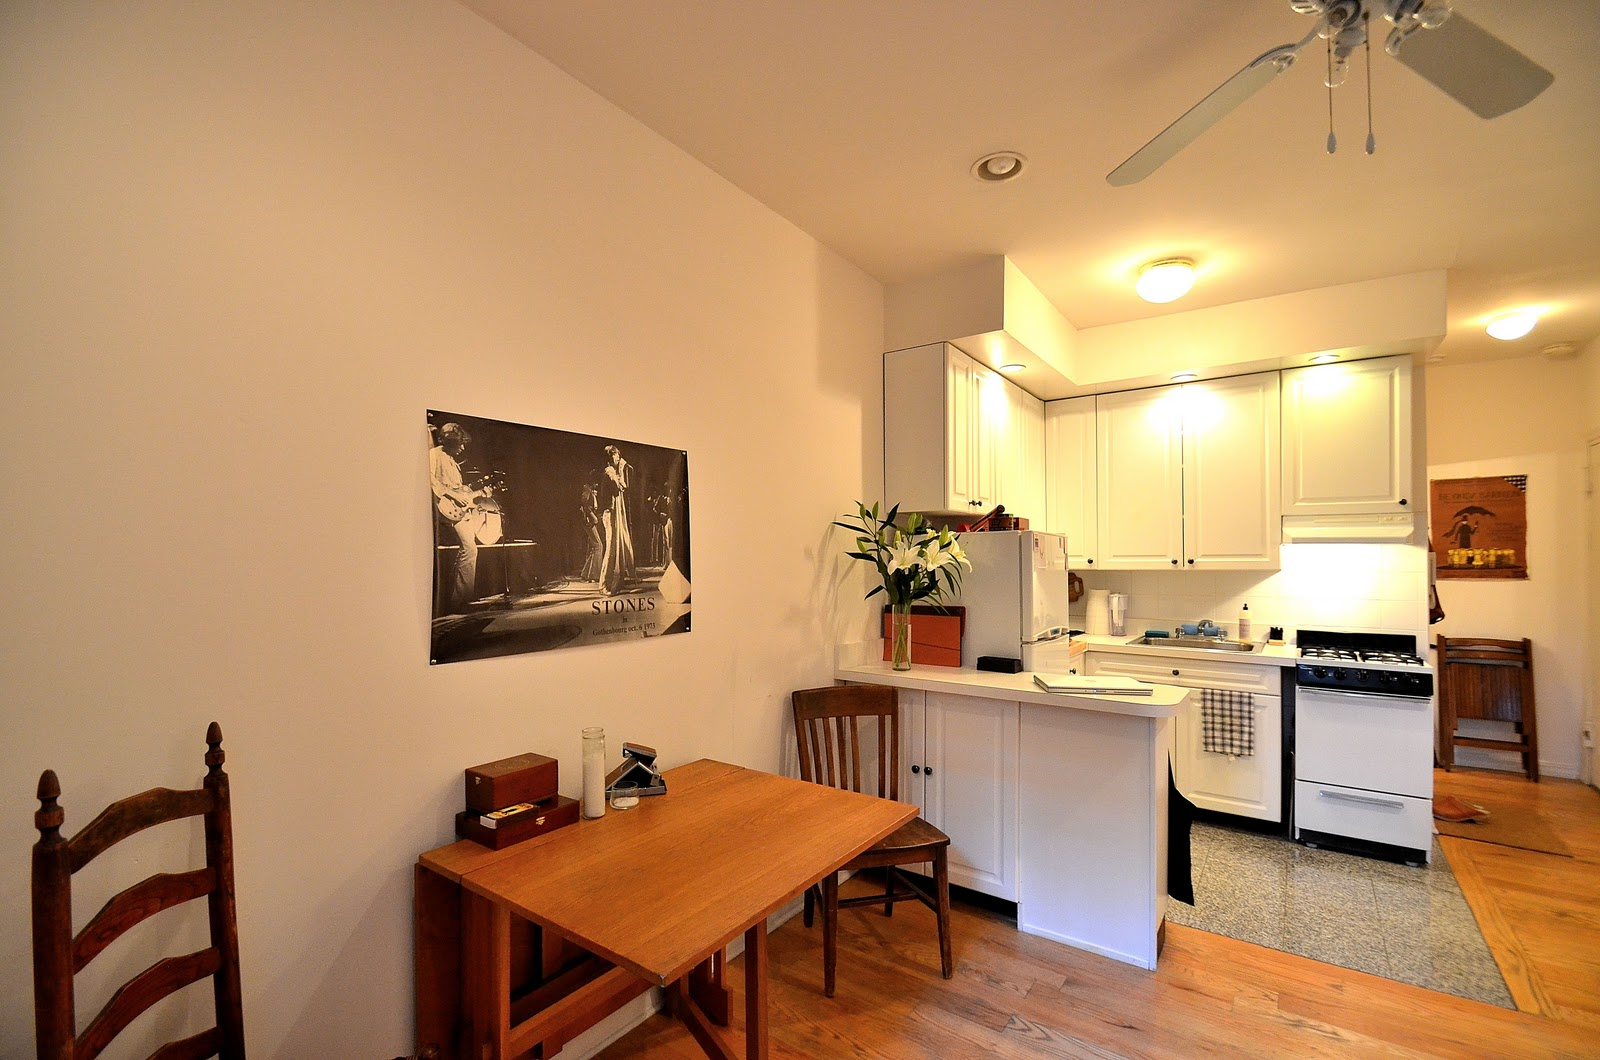 City Living Apt Blog Wel e NYC East Village studio for rent